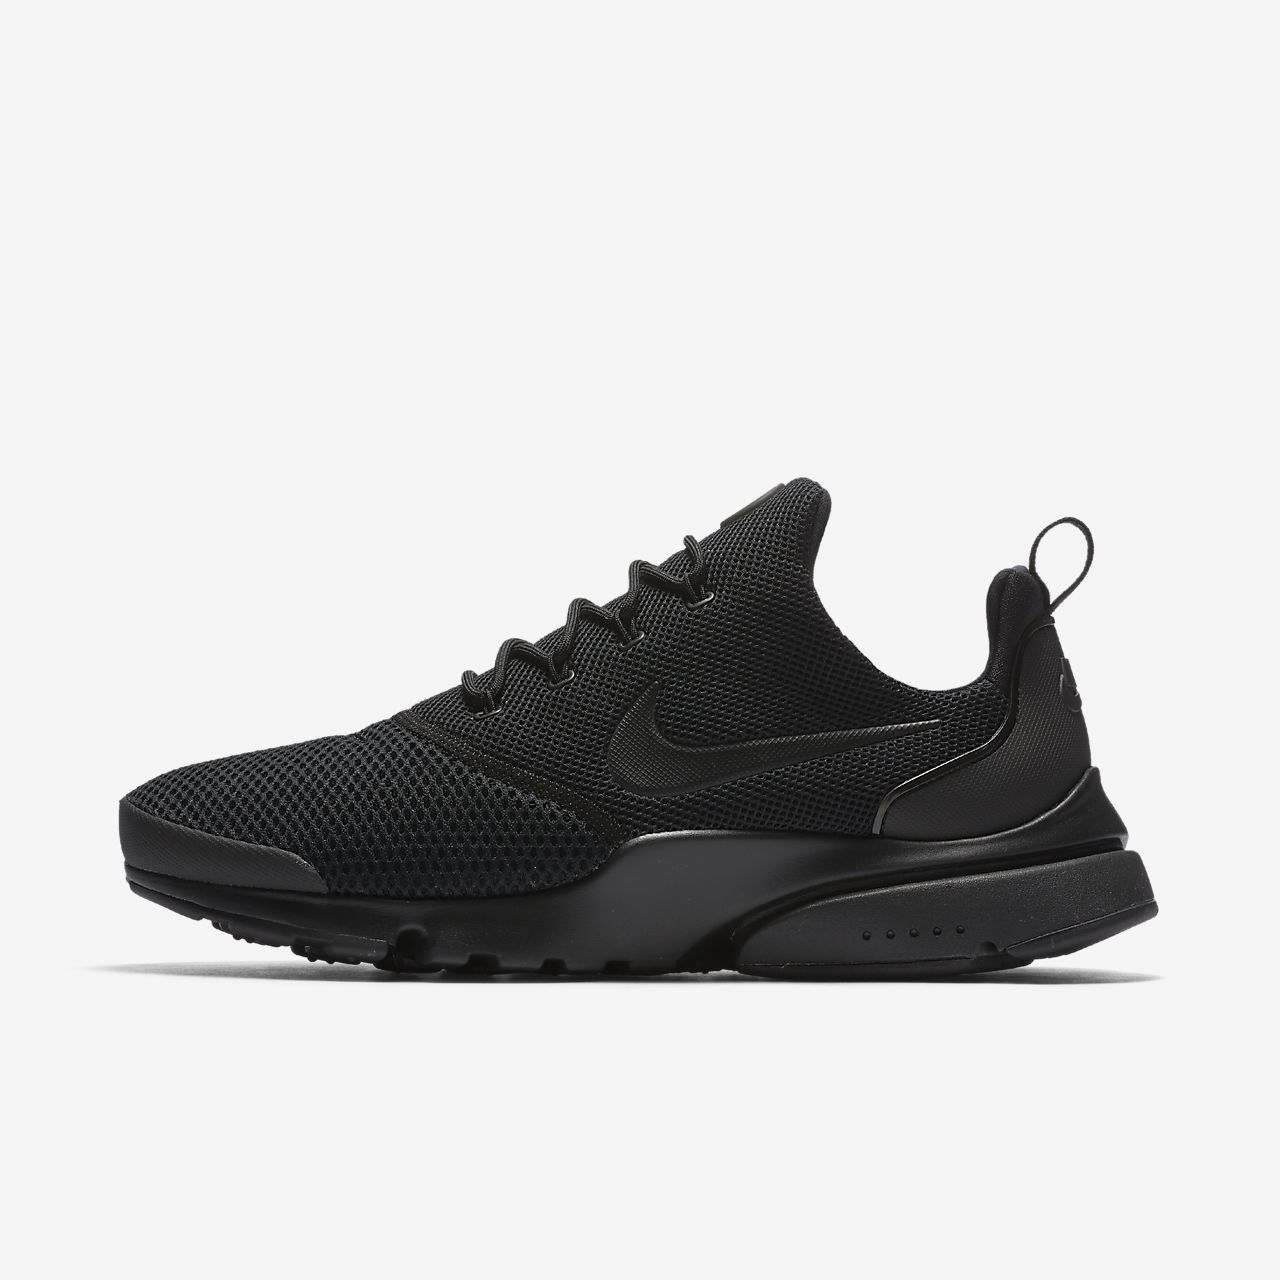 new concept 5aef6 bbf13 ... Nike Presto Fly Men s Shoe